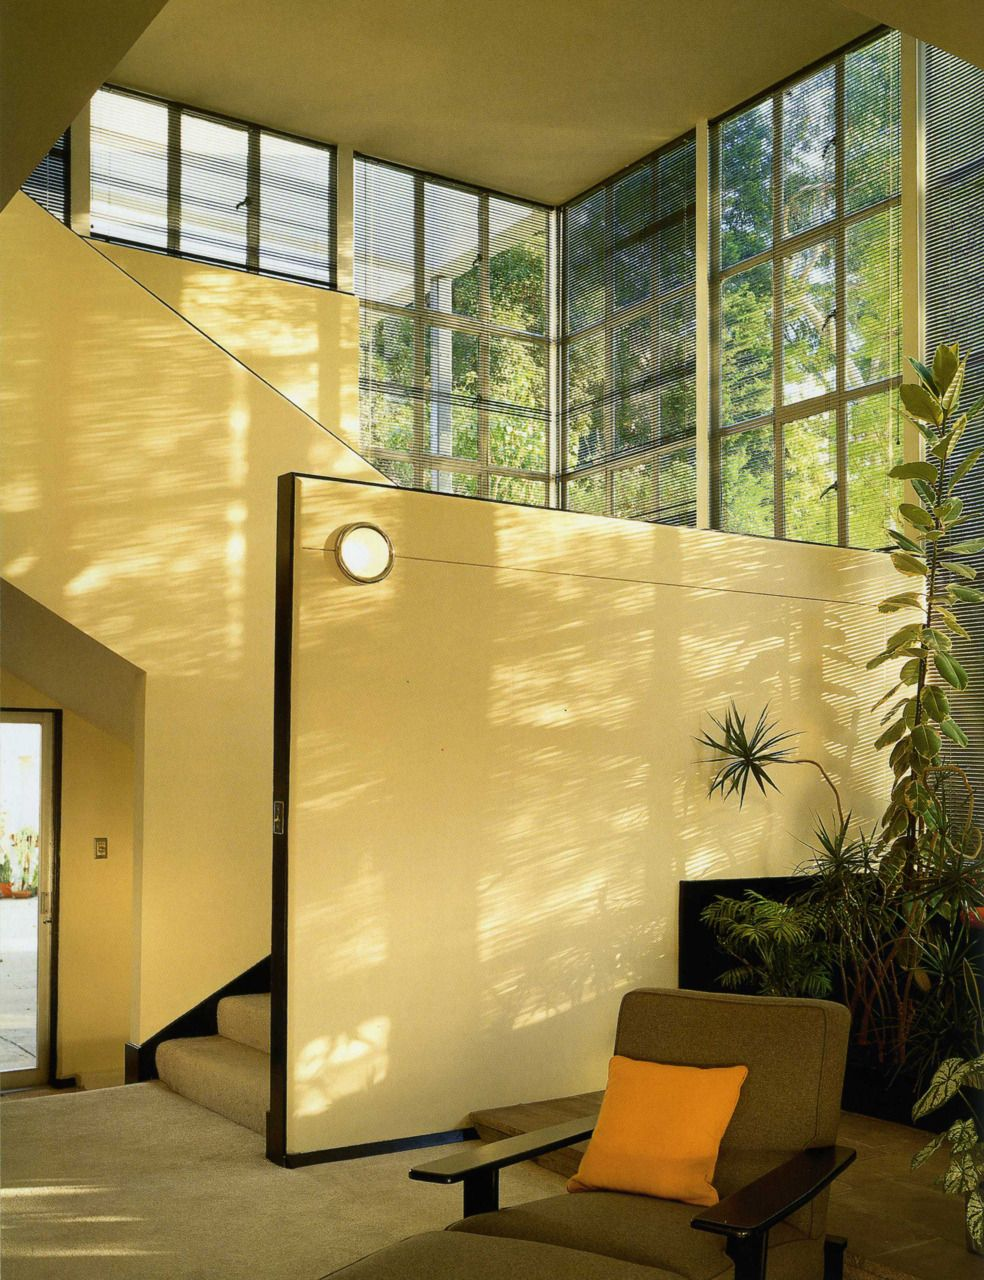 Vdvintagedesign The Lovell House Los Angeles California United